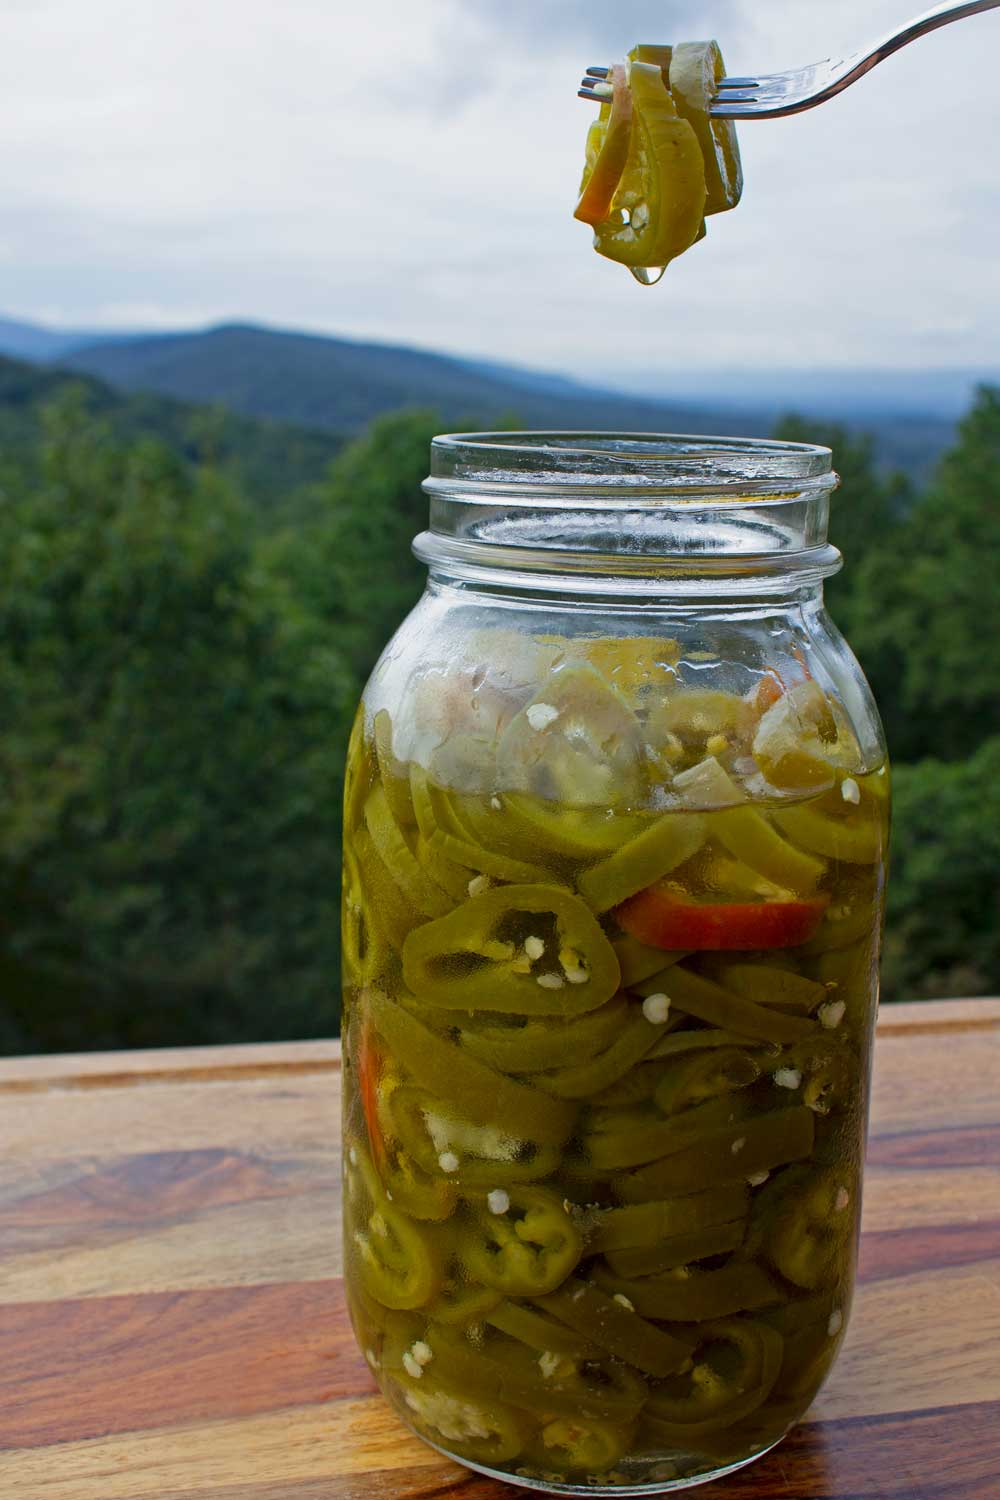 Candied Jalapenos are an addictive blend of sweet and spicy that will become a pantry staple to use in potato salad, bbq, burgers, and more!